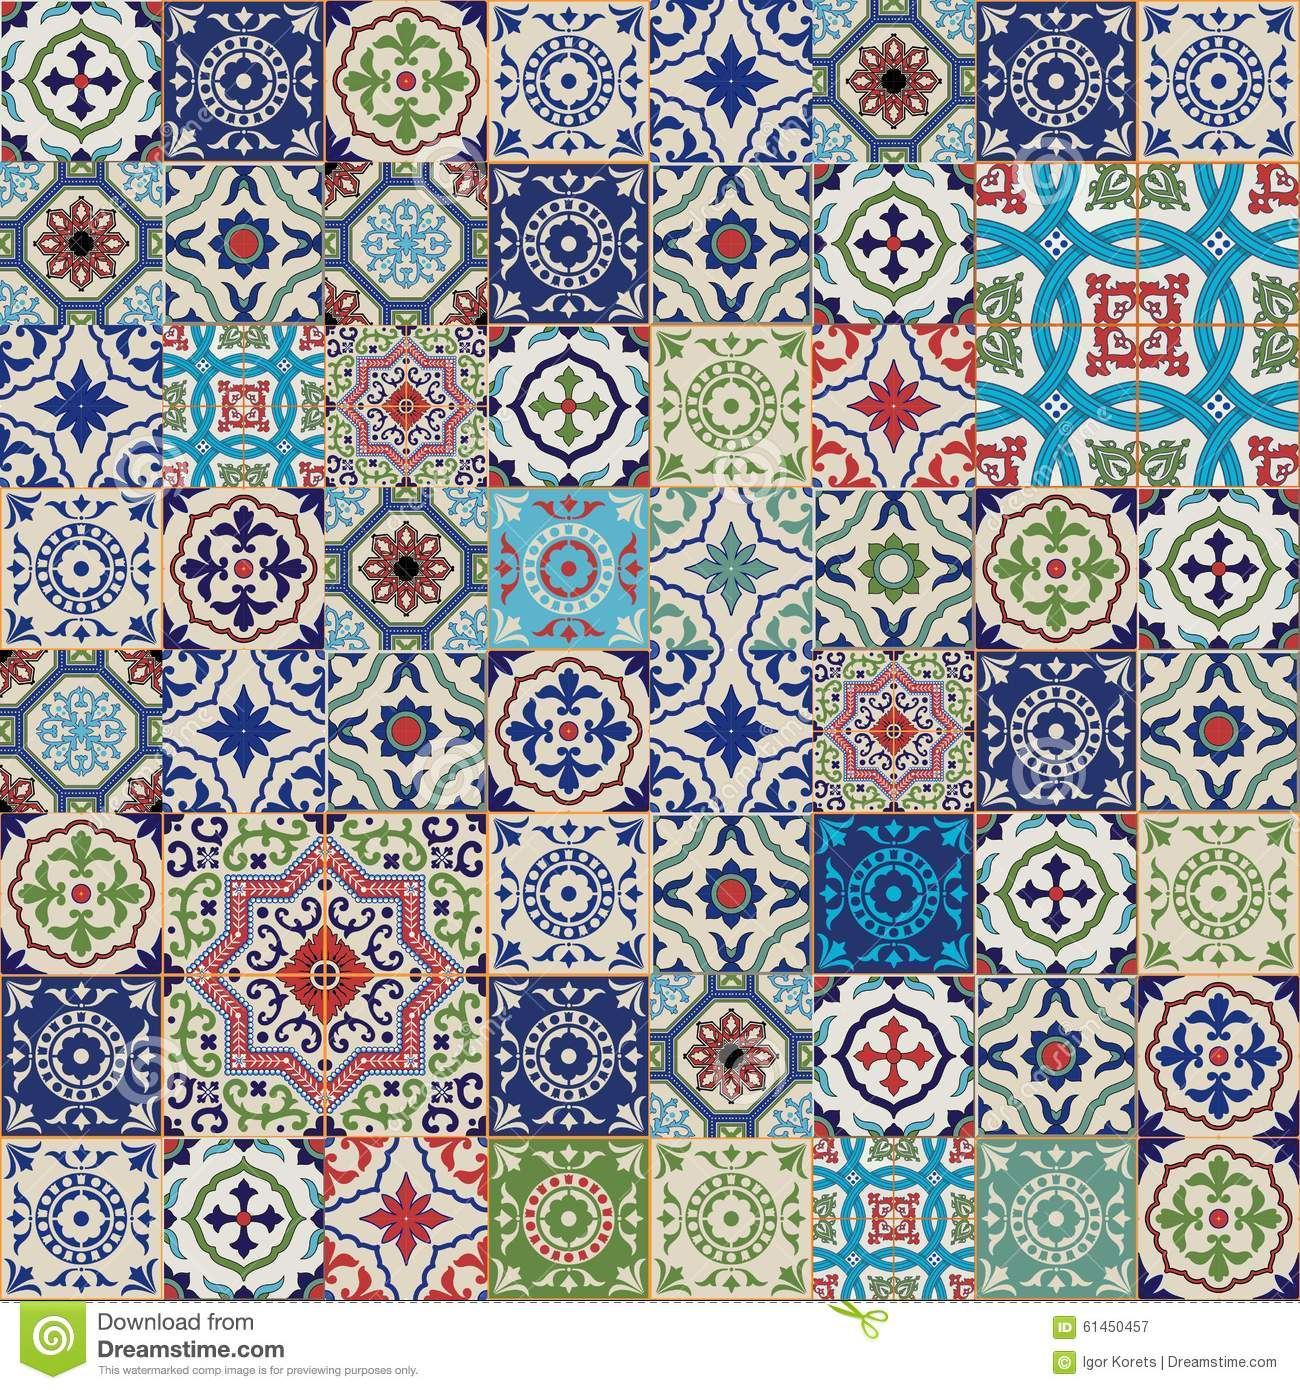 Vinyl Tegel Patroon Mega Gorgeous Seamless Patchwork Pattern From Colorful